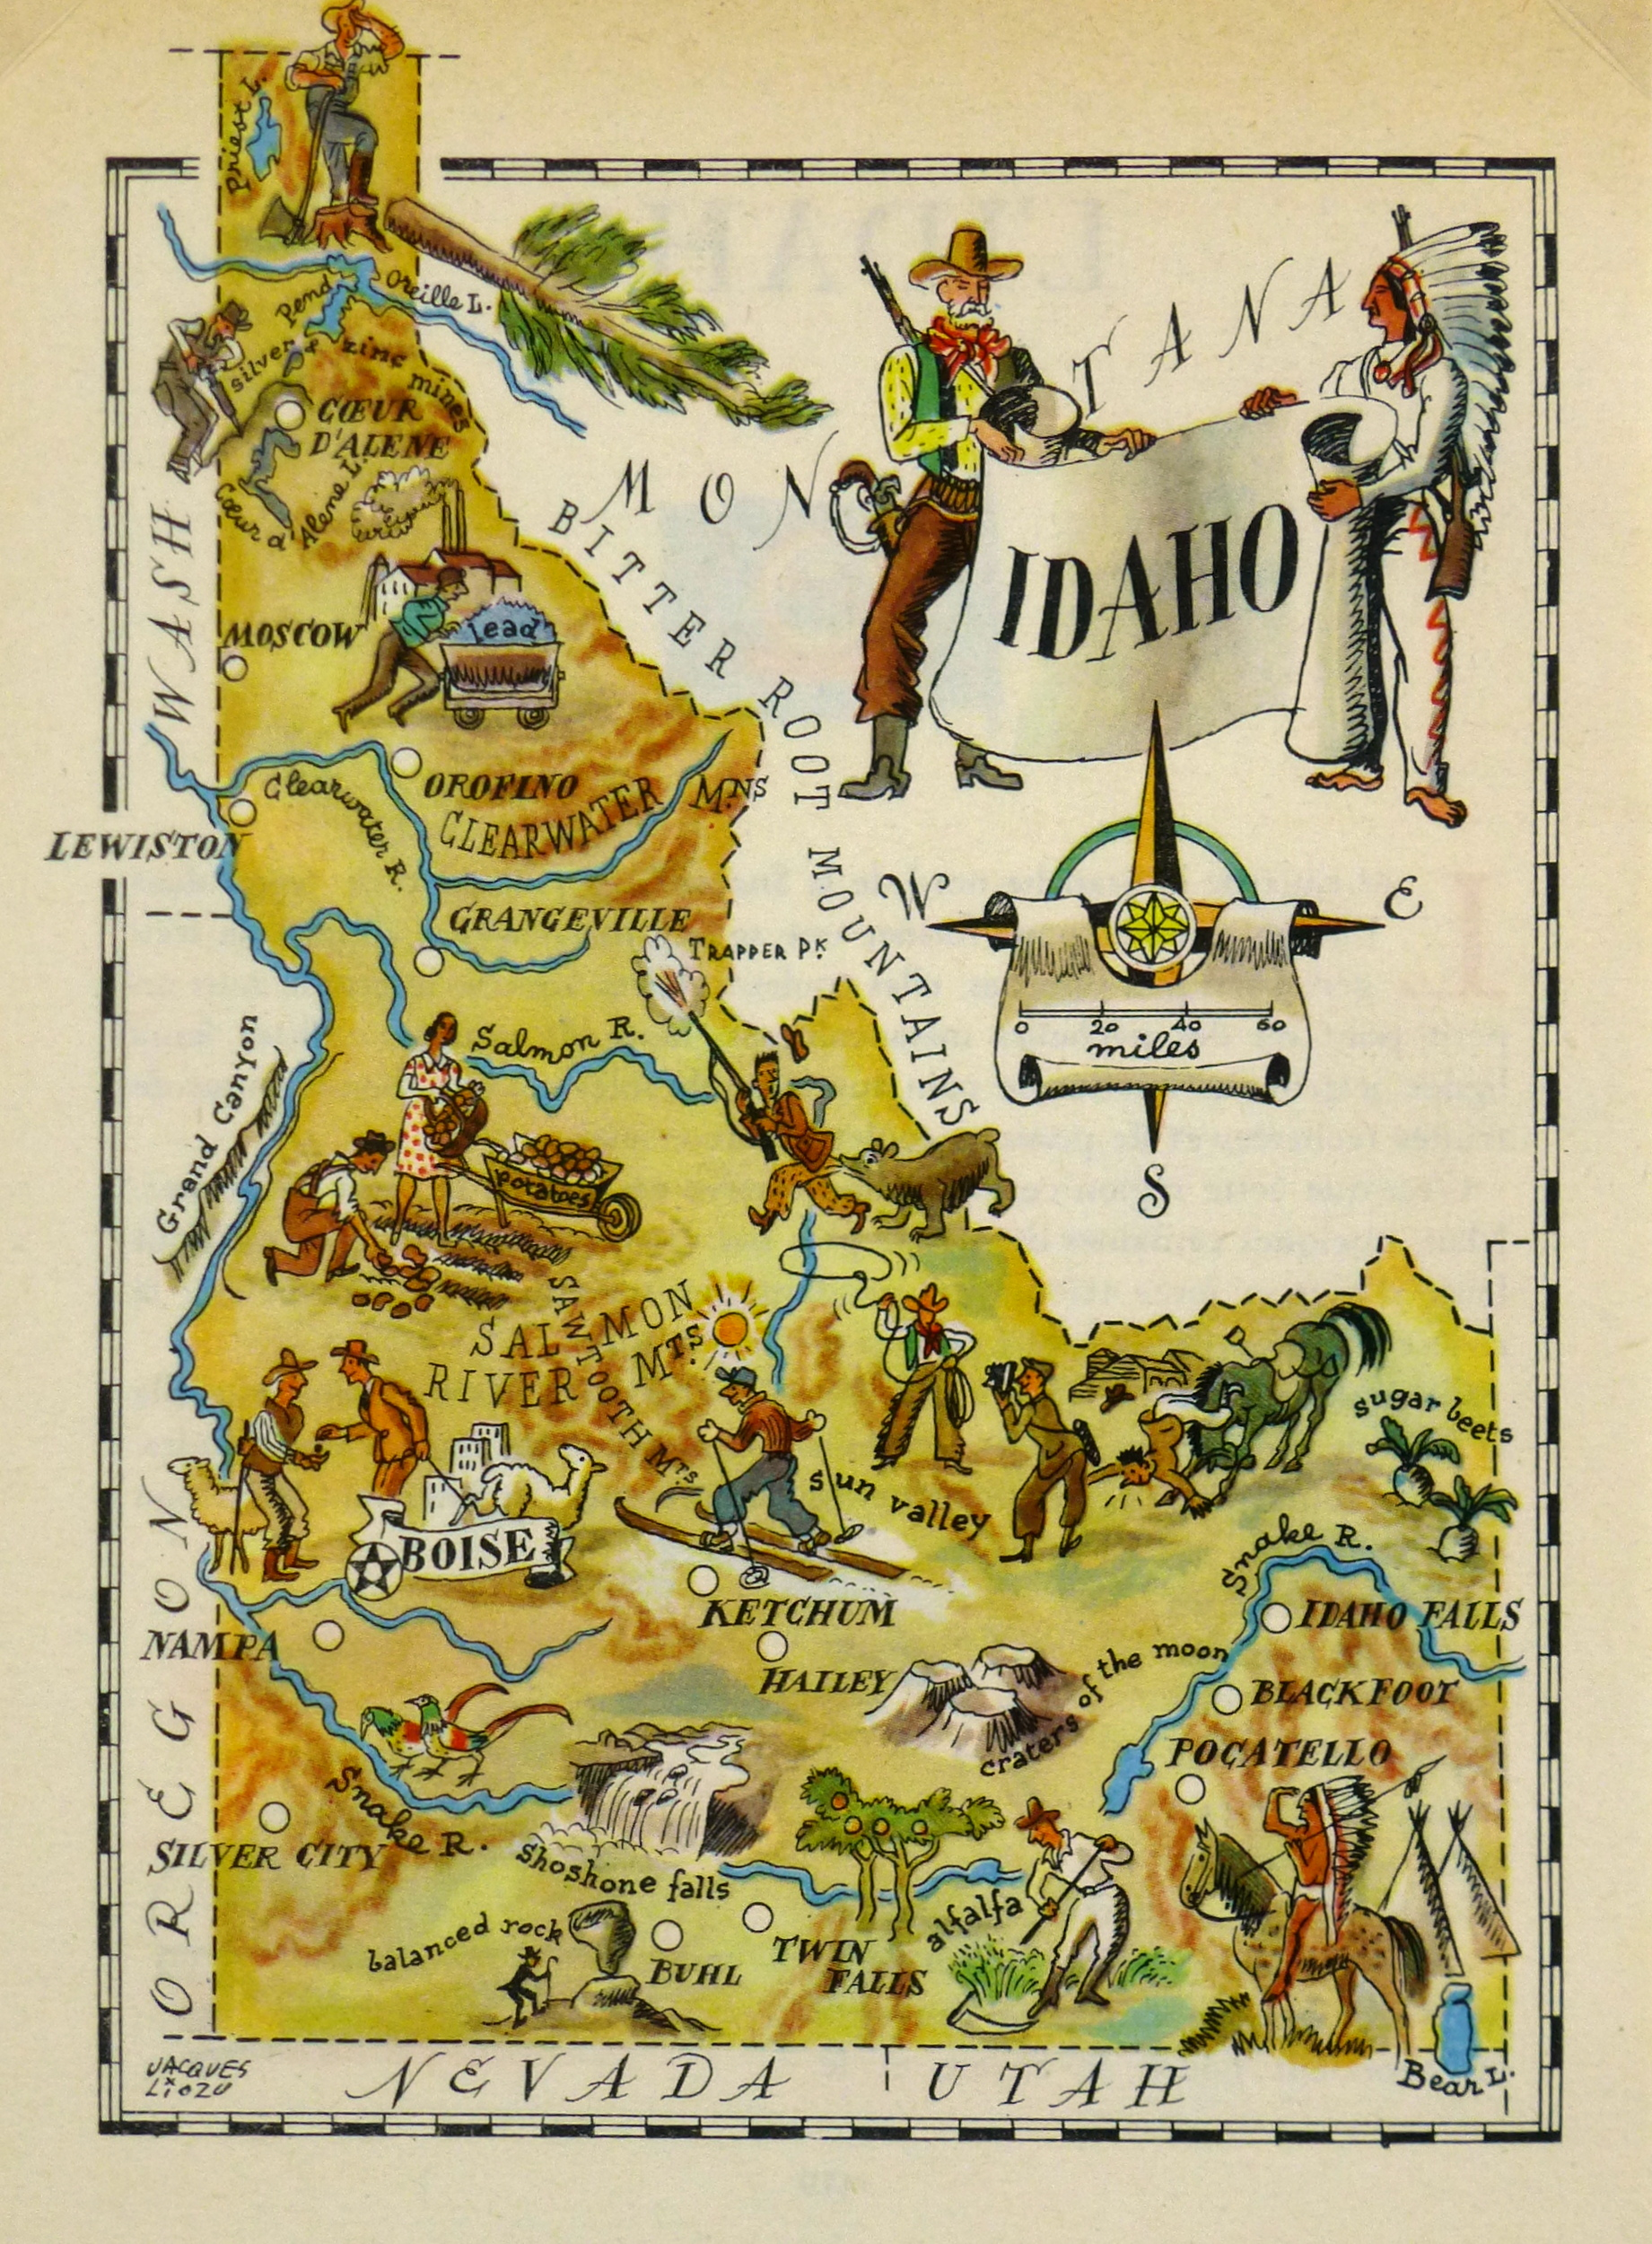 Idaho Pictorial Map, 1946